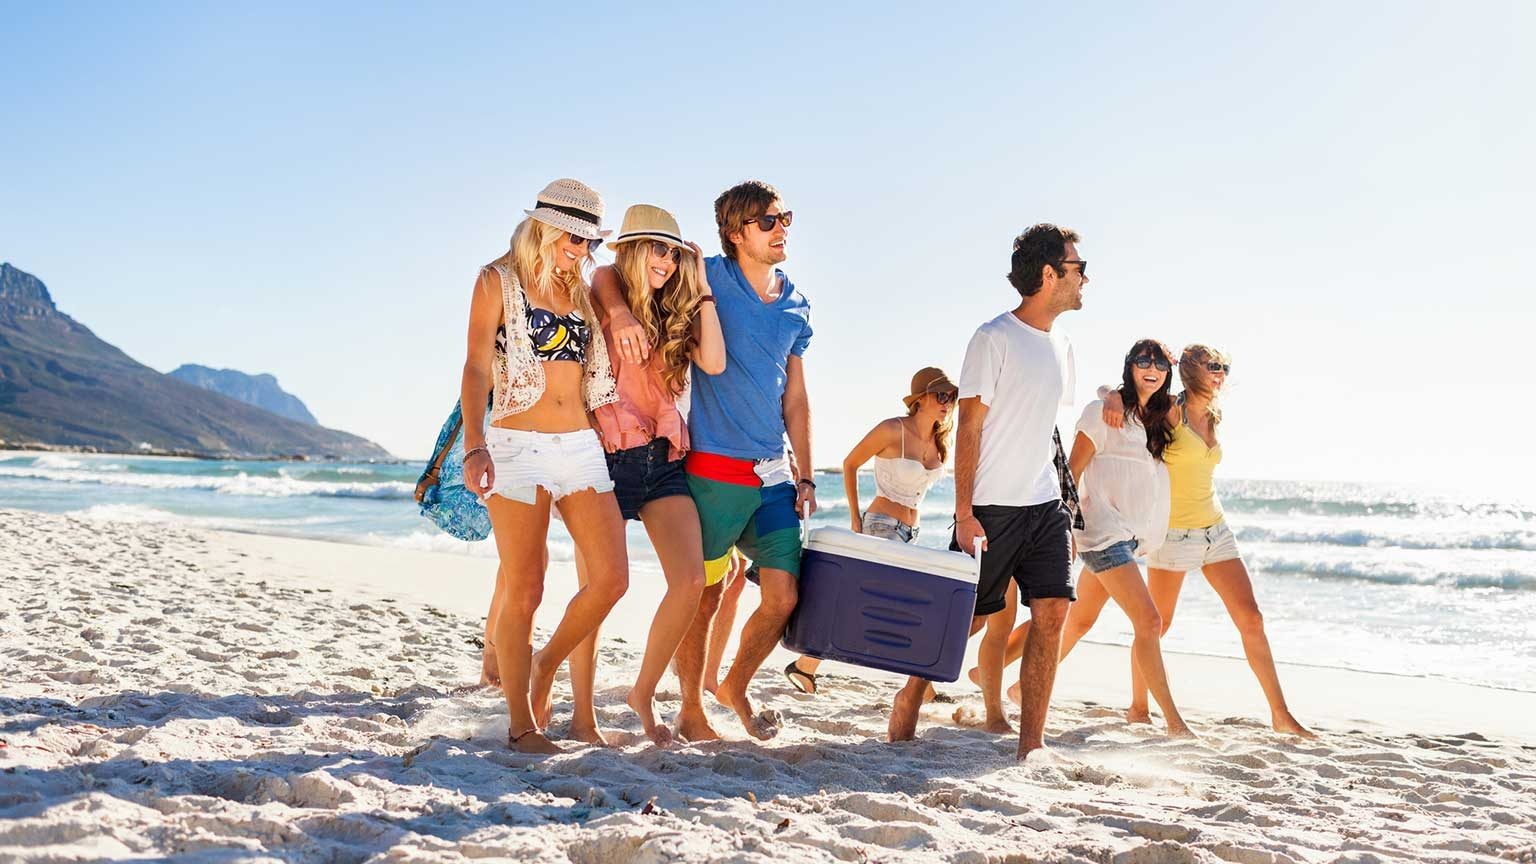 Group of friends on spring break at the beach carrying a cooler for a party